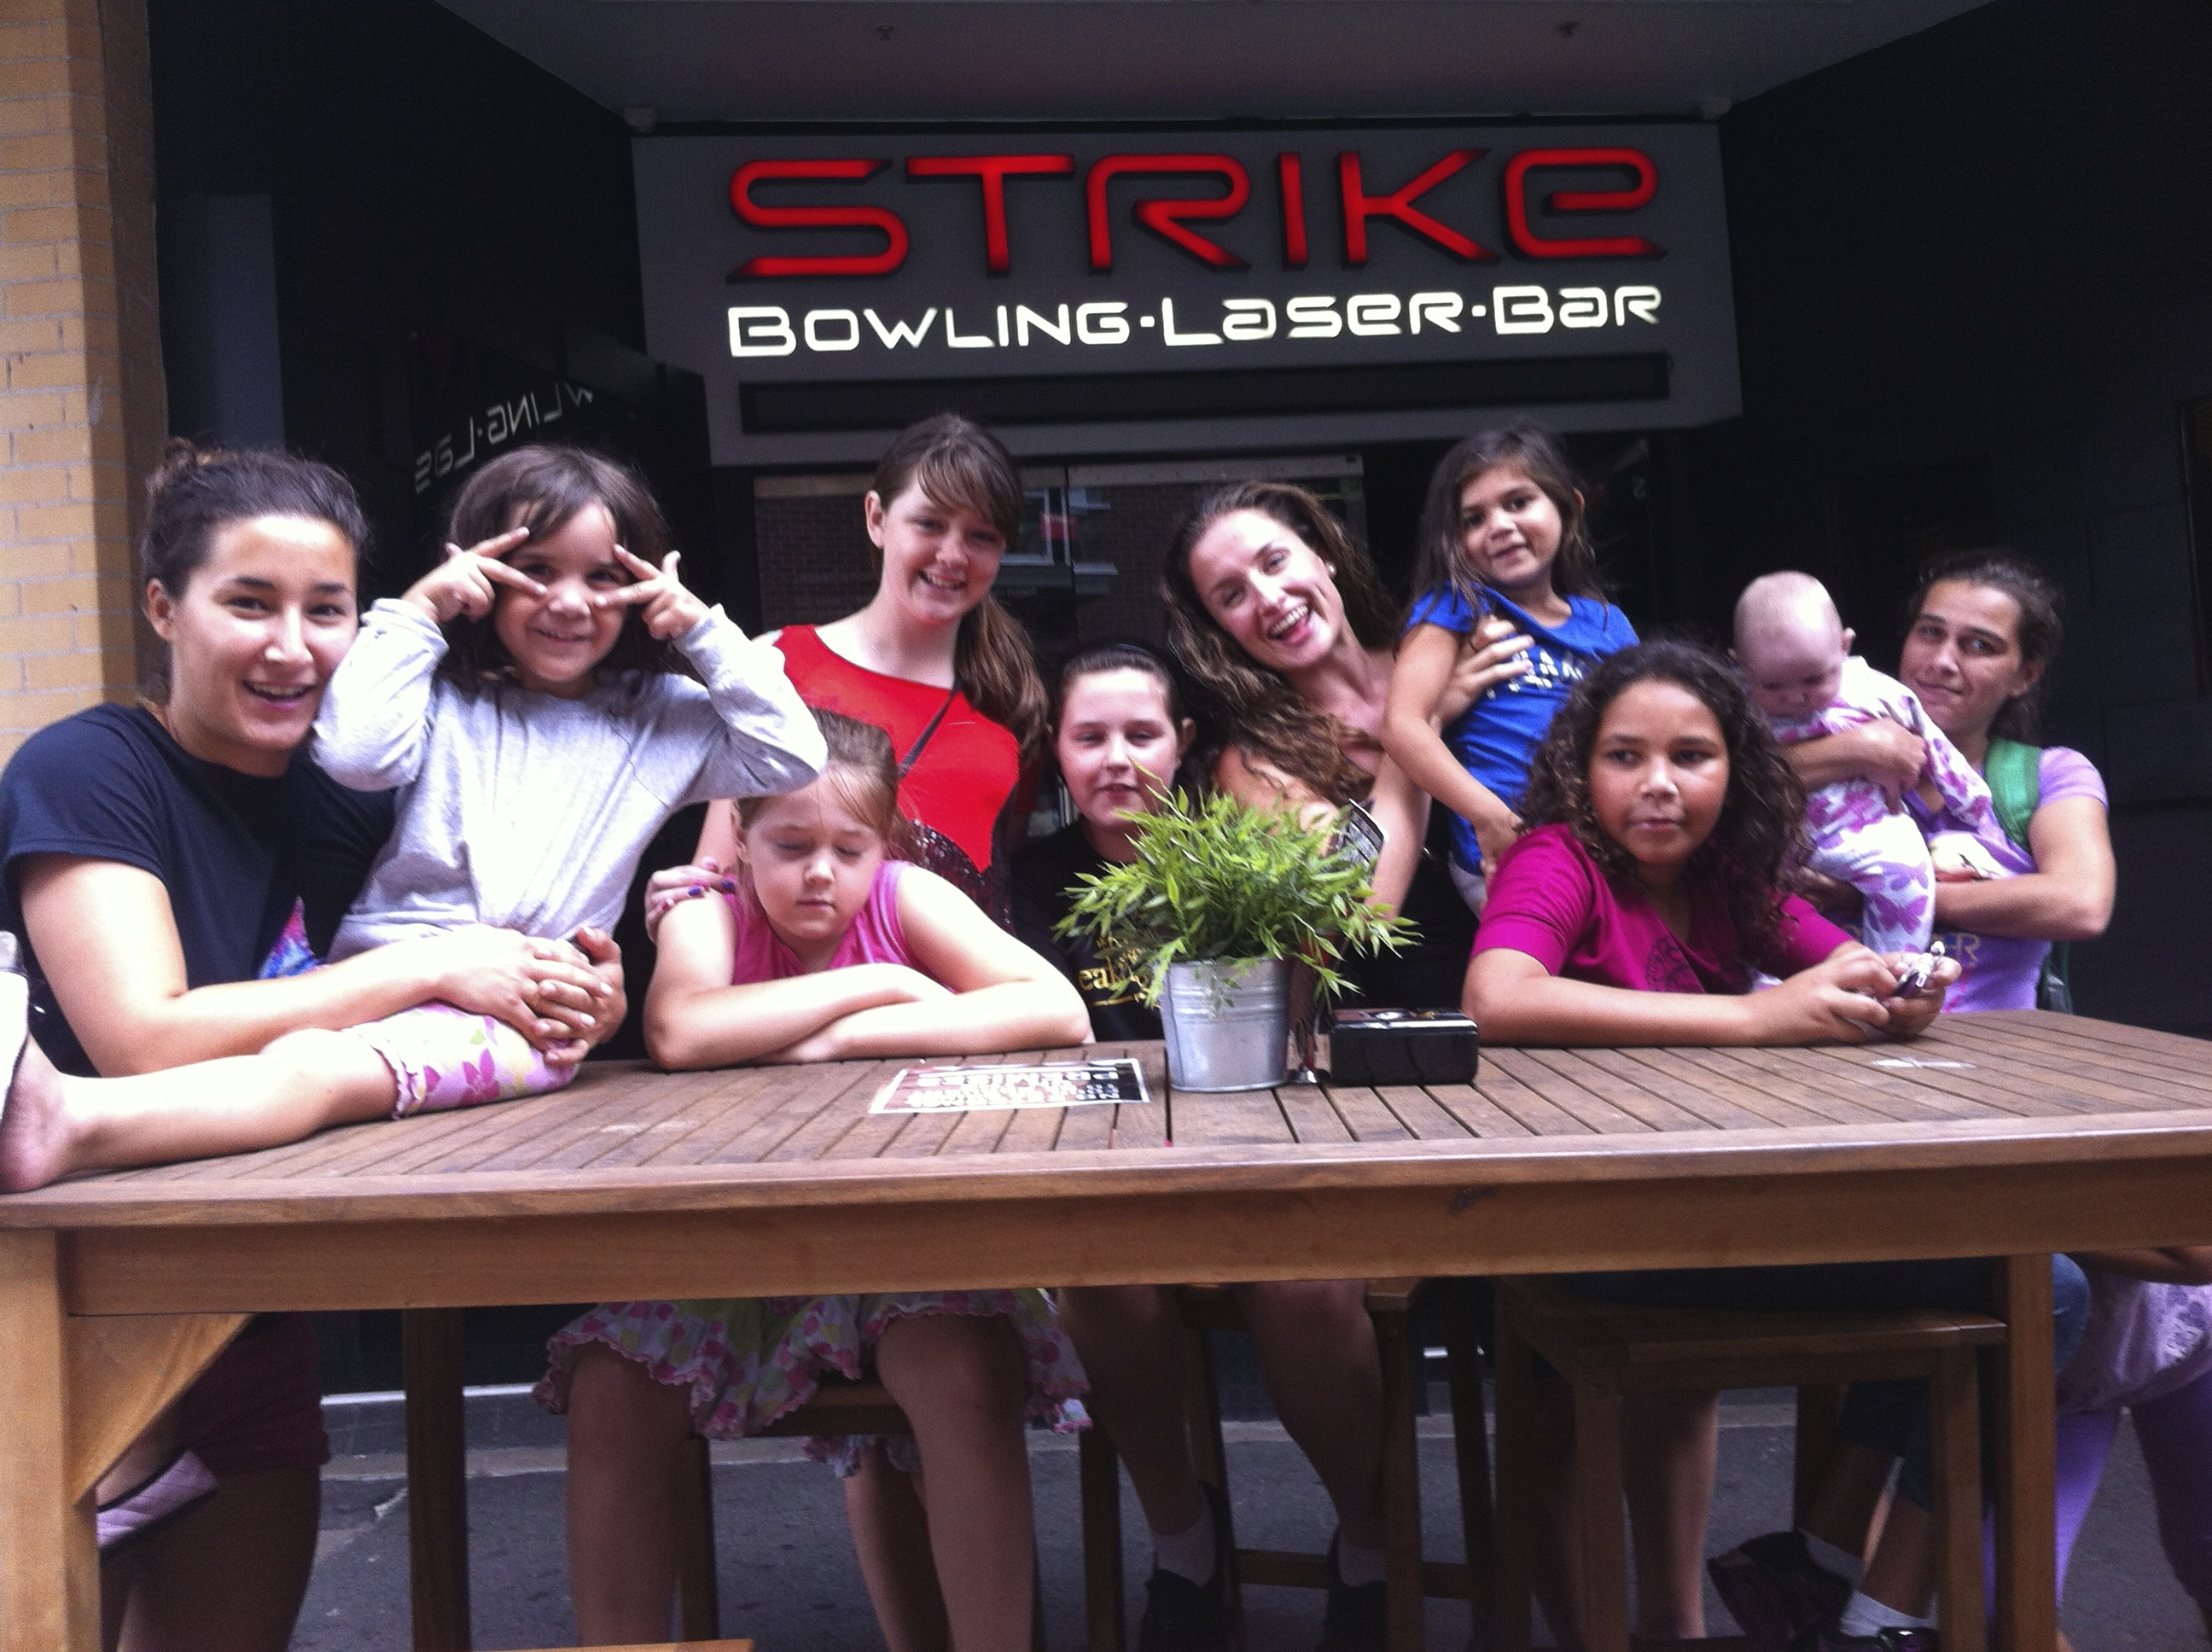 Afternoon outing of bowling and laser tag!